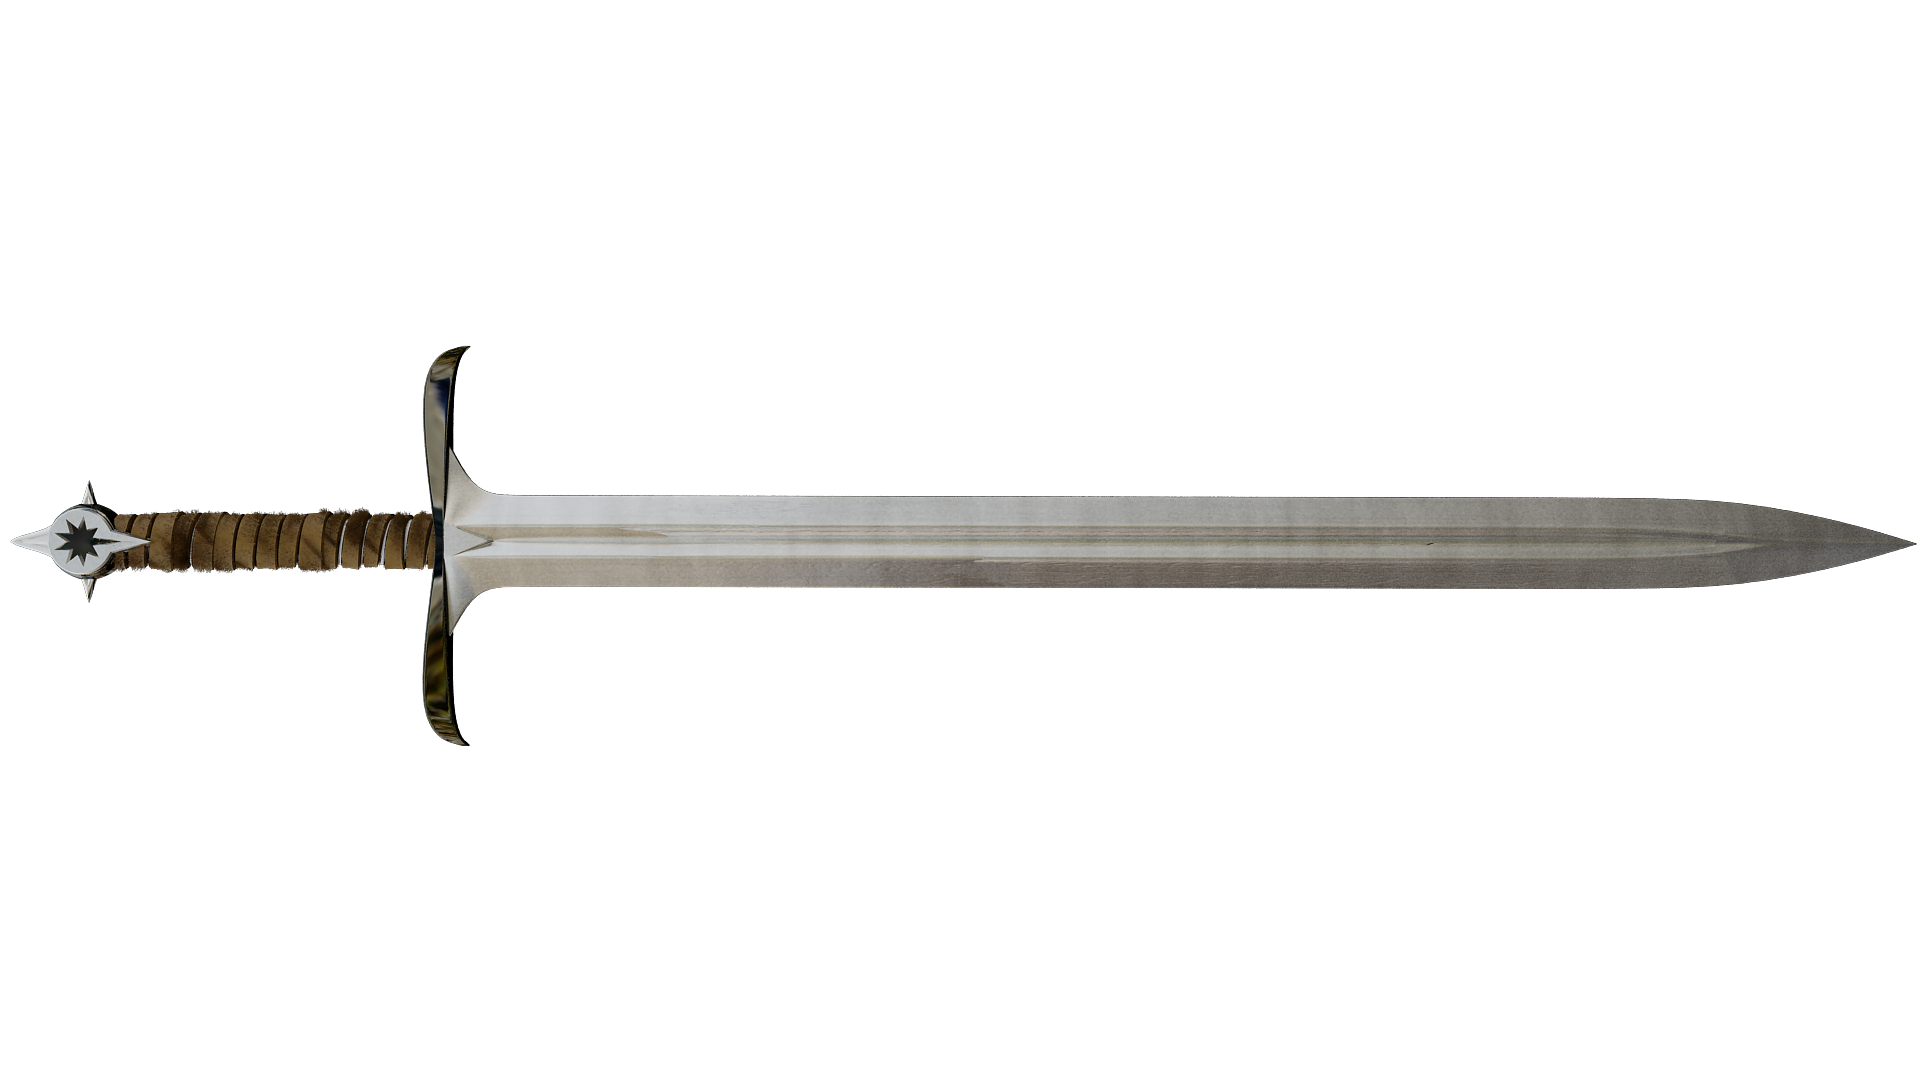 Suggestions de nouvelles armes offensives ou défensives - Page 7 Sword-hd-png-sword-png-image-1920